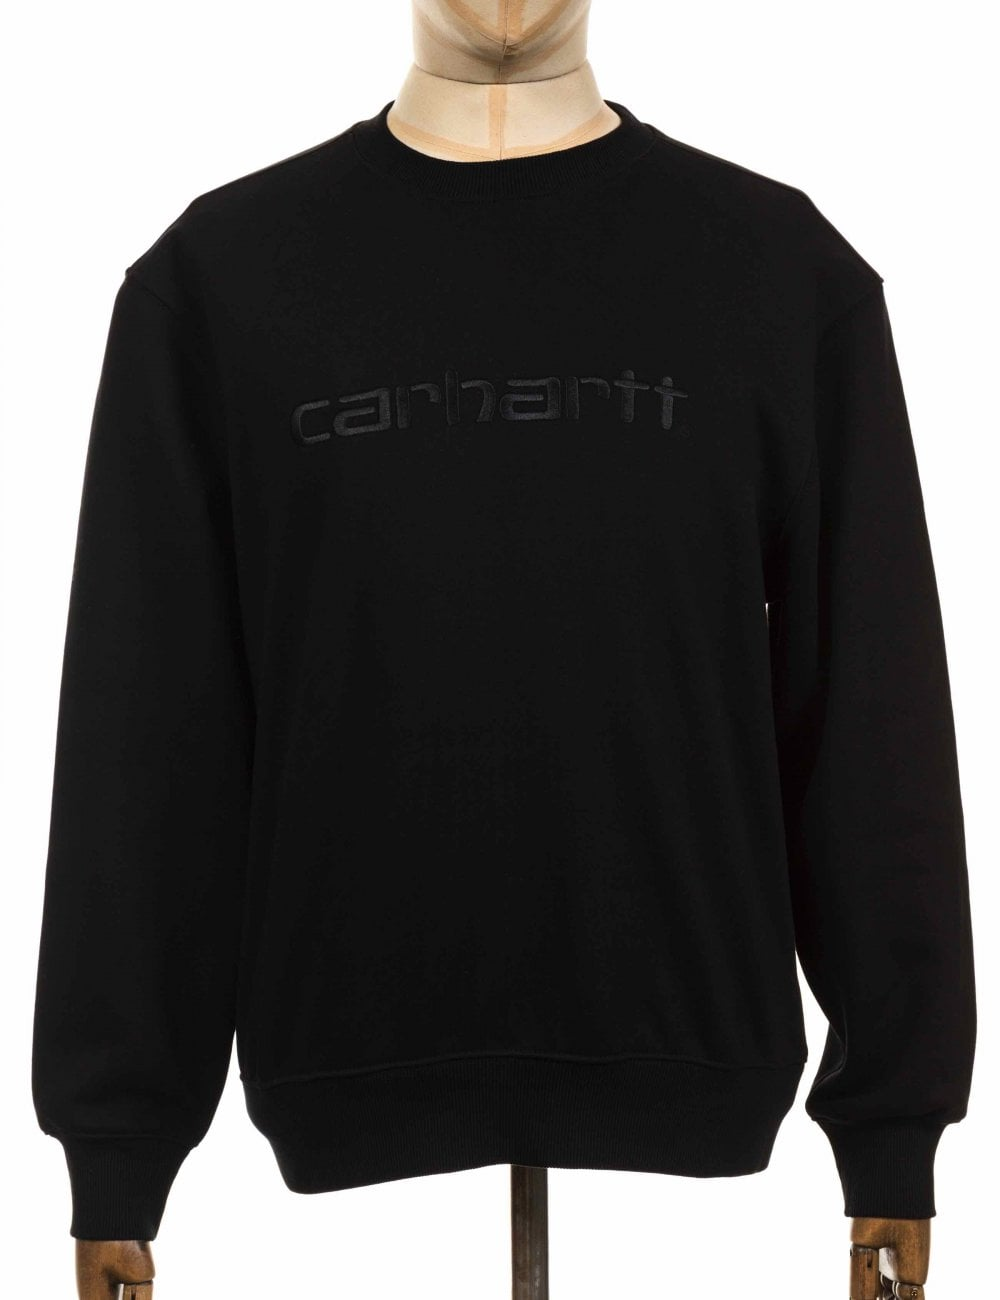 Carhartt Wip Sweatshirt Black Clothing From Fat Drkevin Leather Shoes 13301 Maroon 42